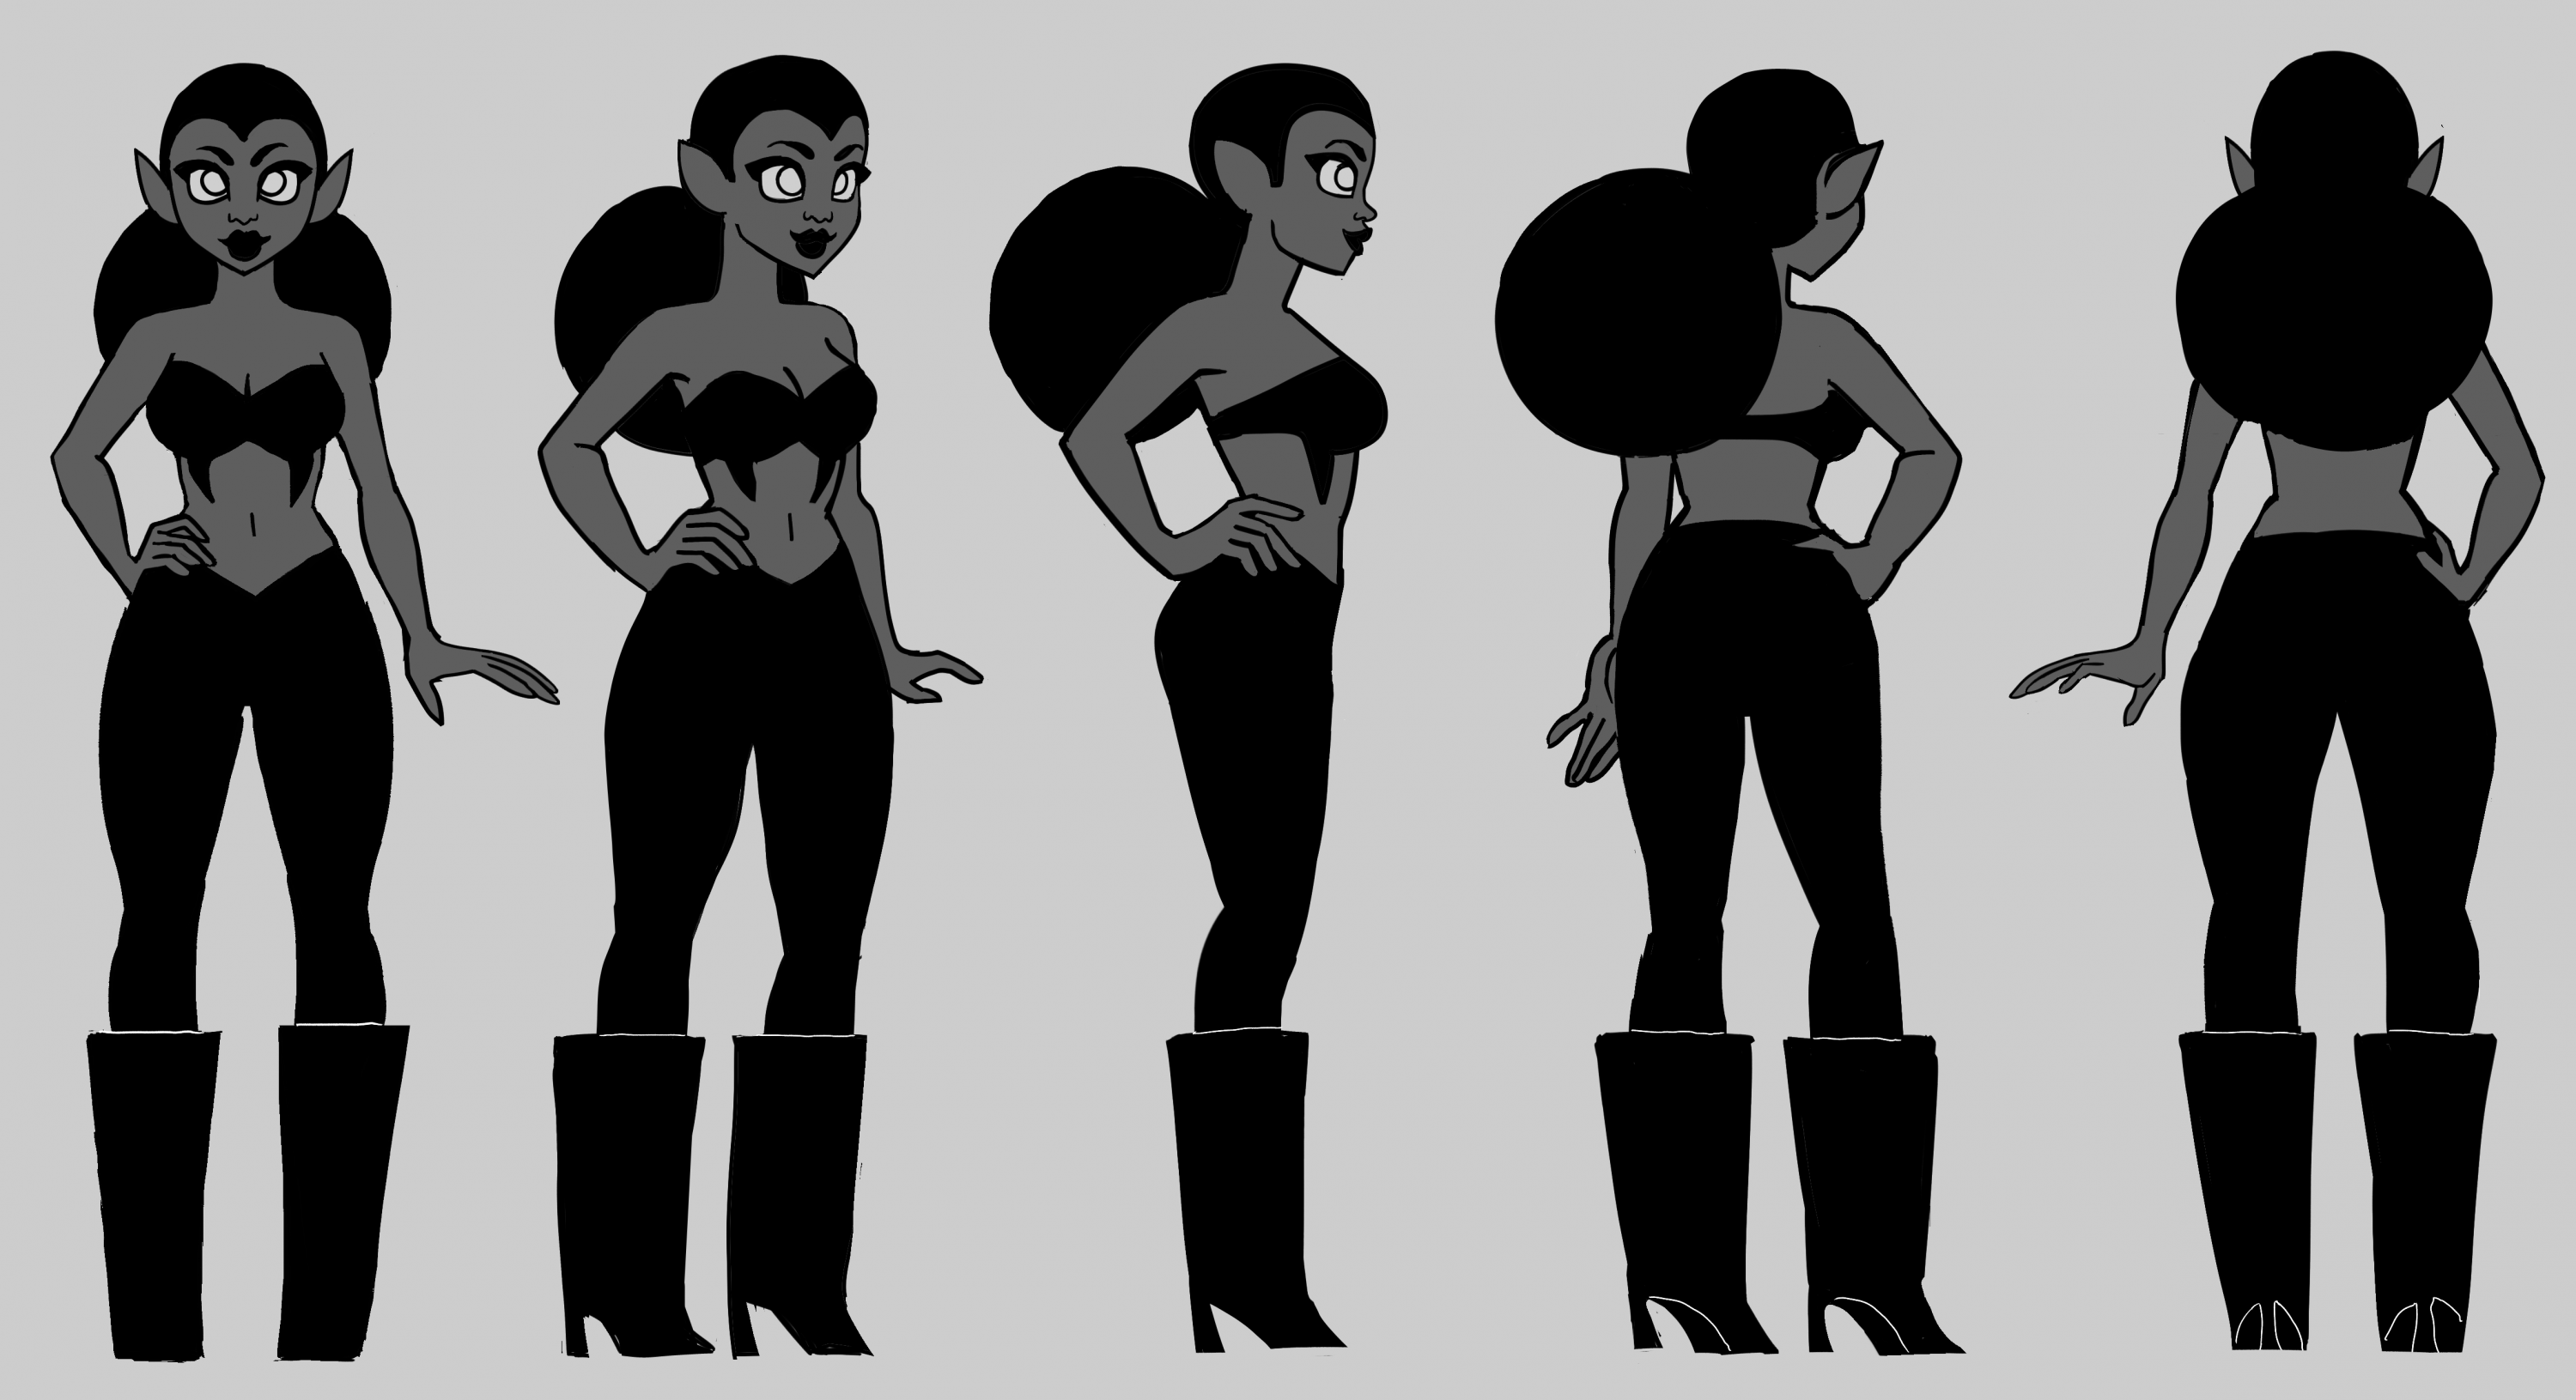 A short woman in black lipstick, with her hair pulled back in a large bun. She's wearing a black cutout top and matching tights, with large black boots. She's illustrated in five angles: including front, back, profile, and 3/4 view. The image is in graysc